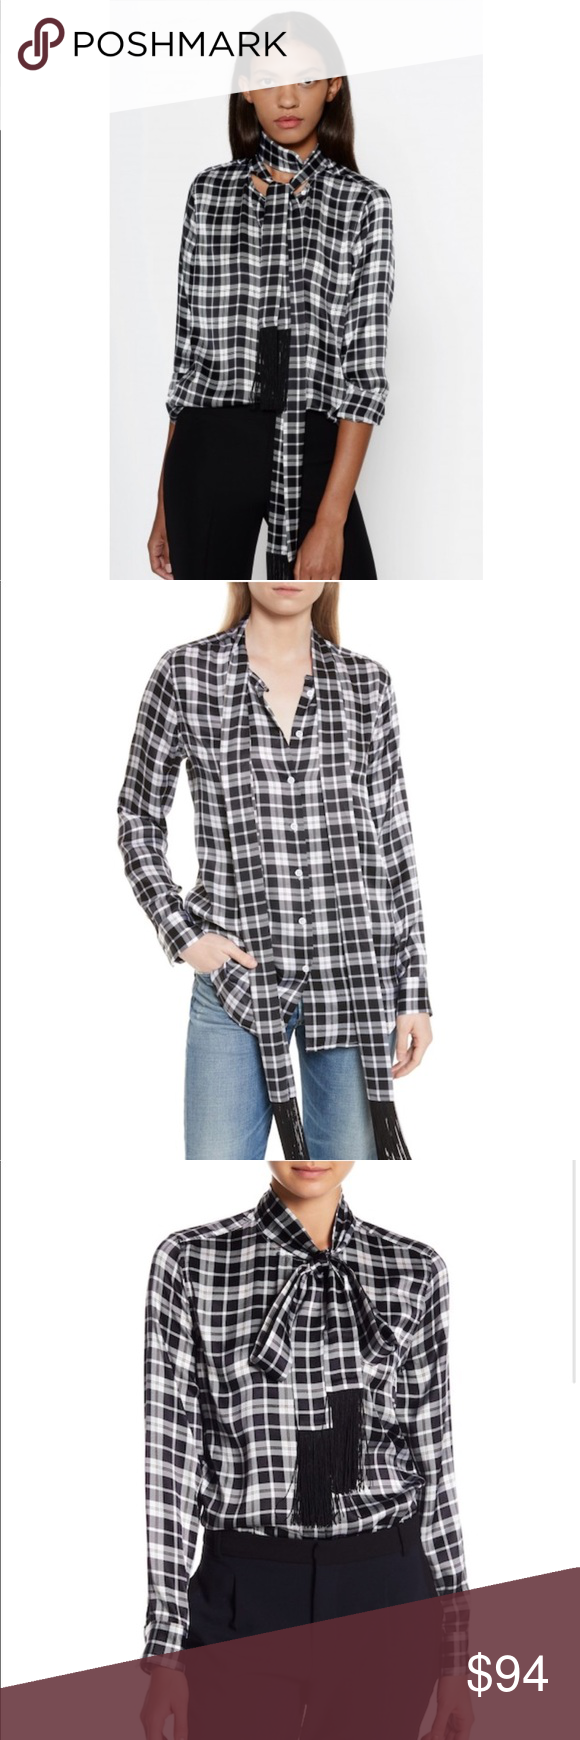 87119987ac0867 Equipment Essential Tie Neck Blouse Brand new with tags Details Fringy ties  drape down the